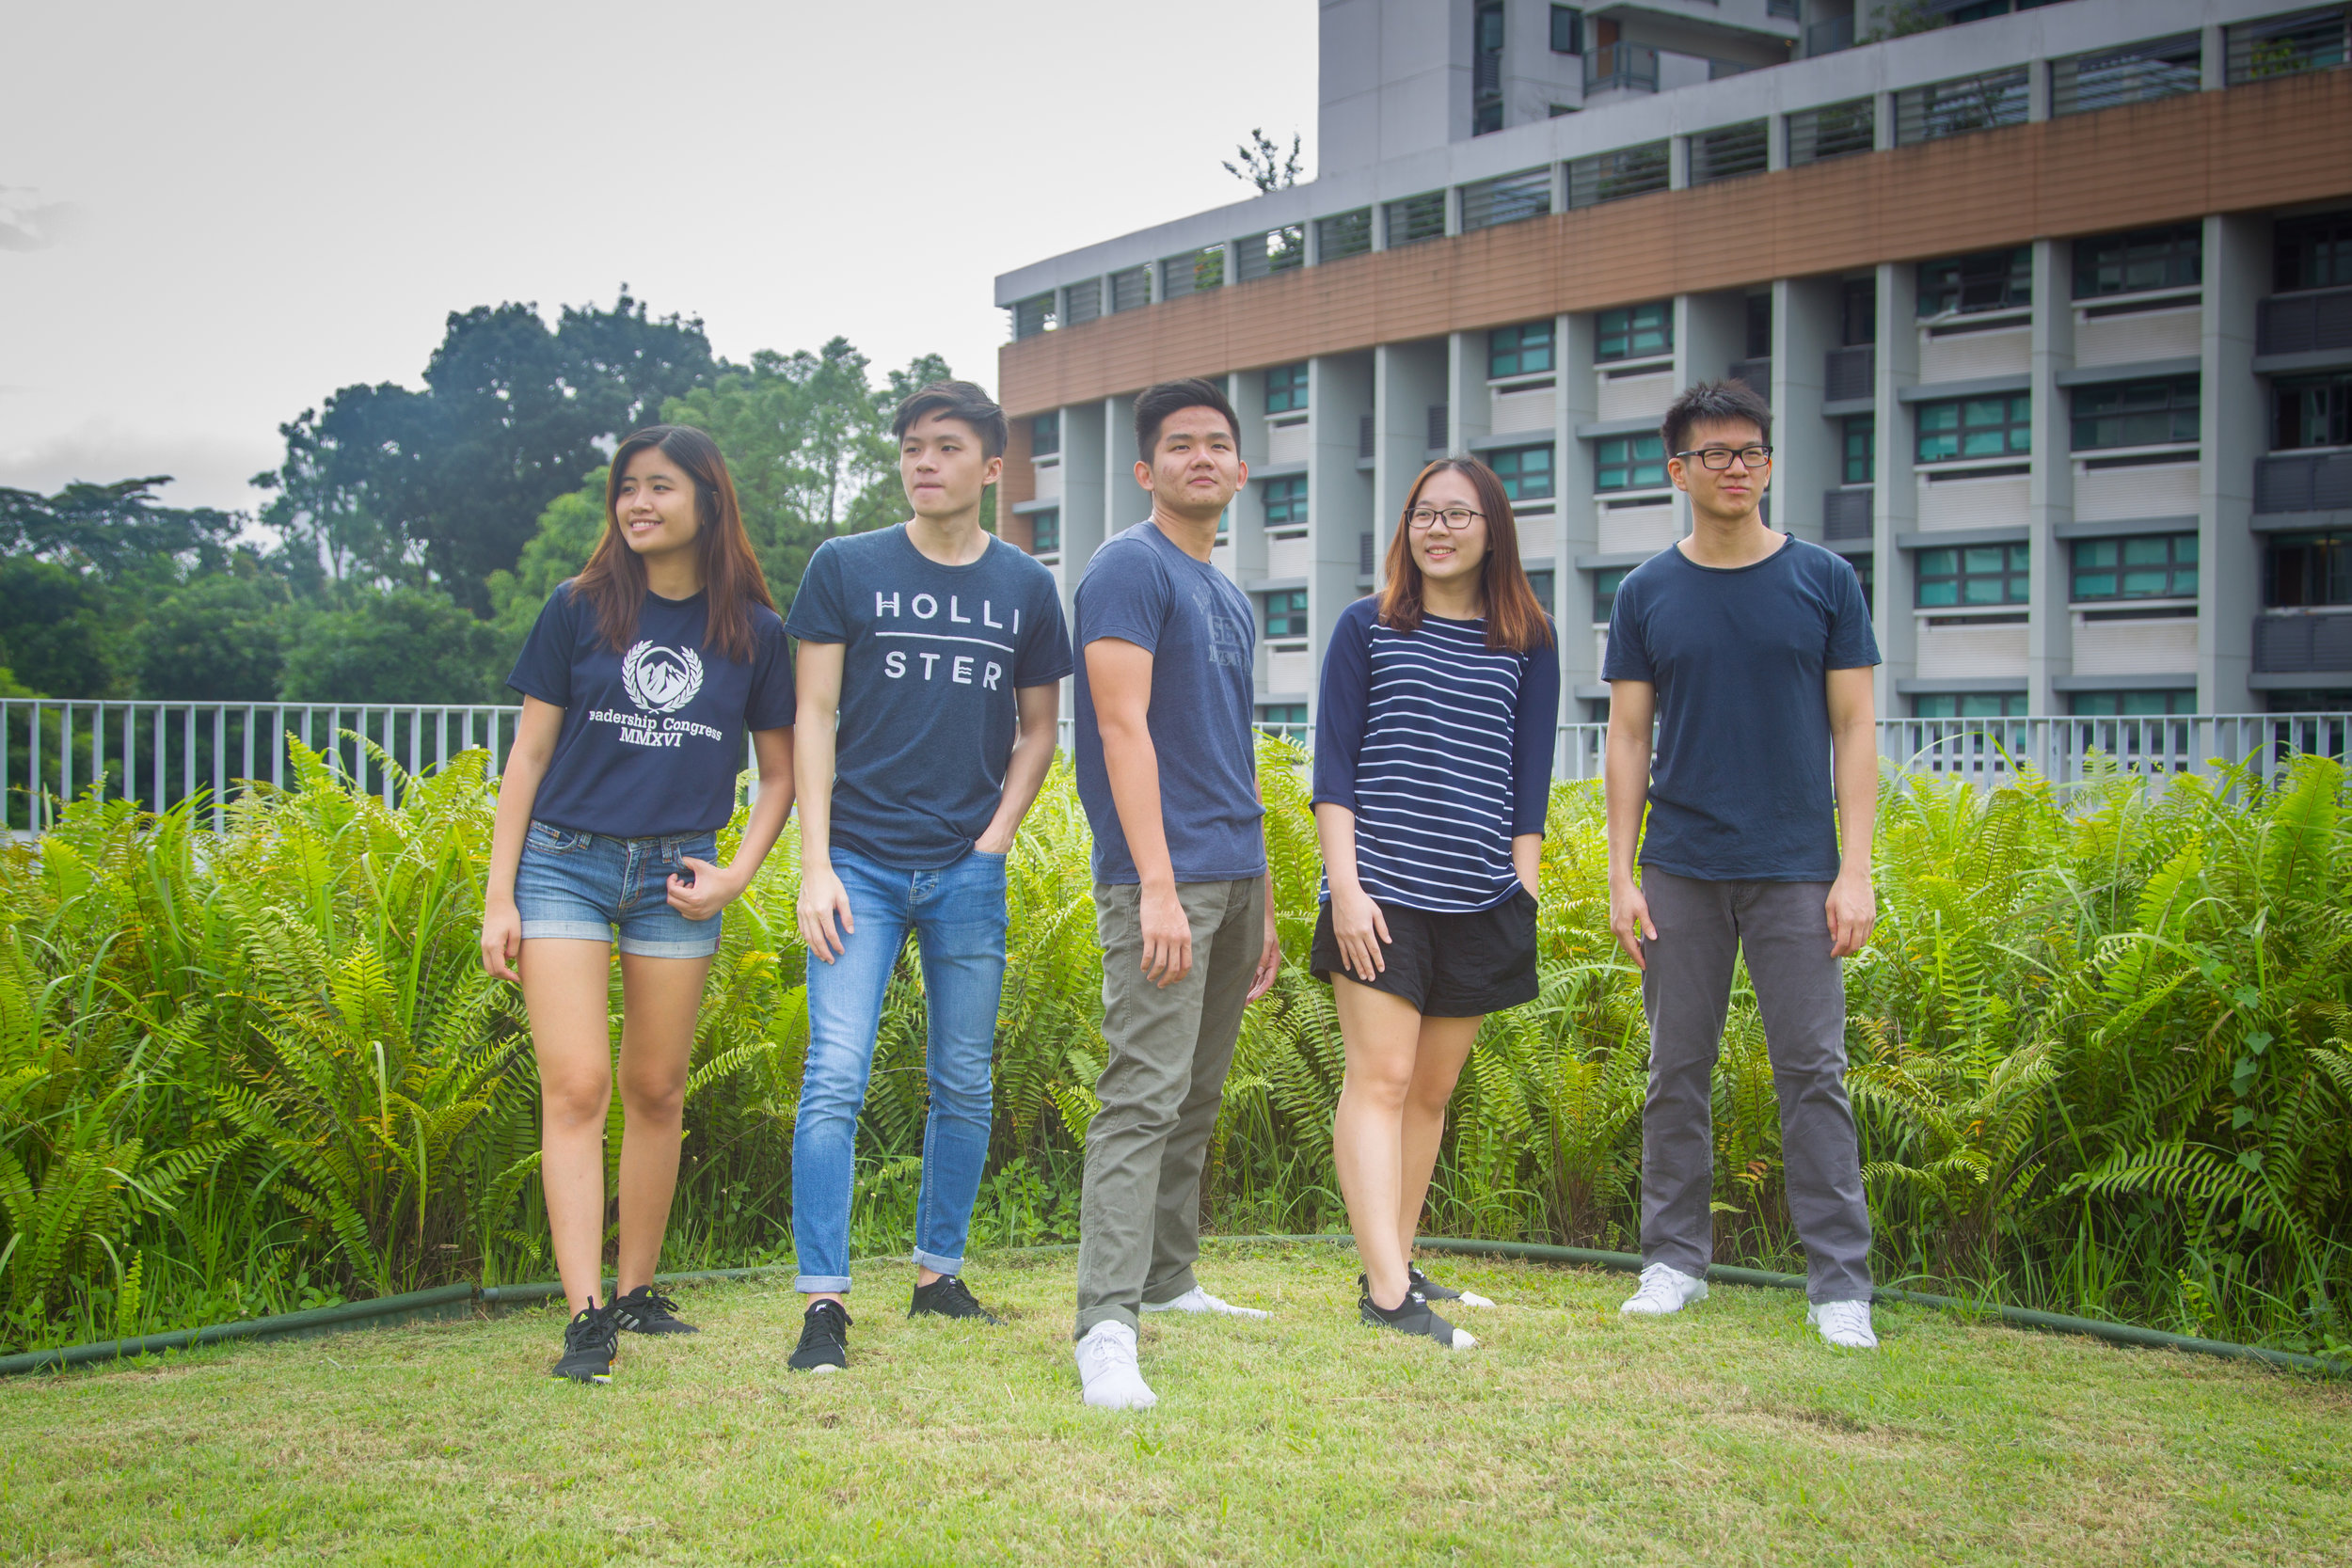 Events - The Events team focuses on building friendships among Economics majors by organising fun-filled activities to bond the student community.Email:events@nuseconsoc.com